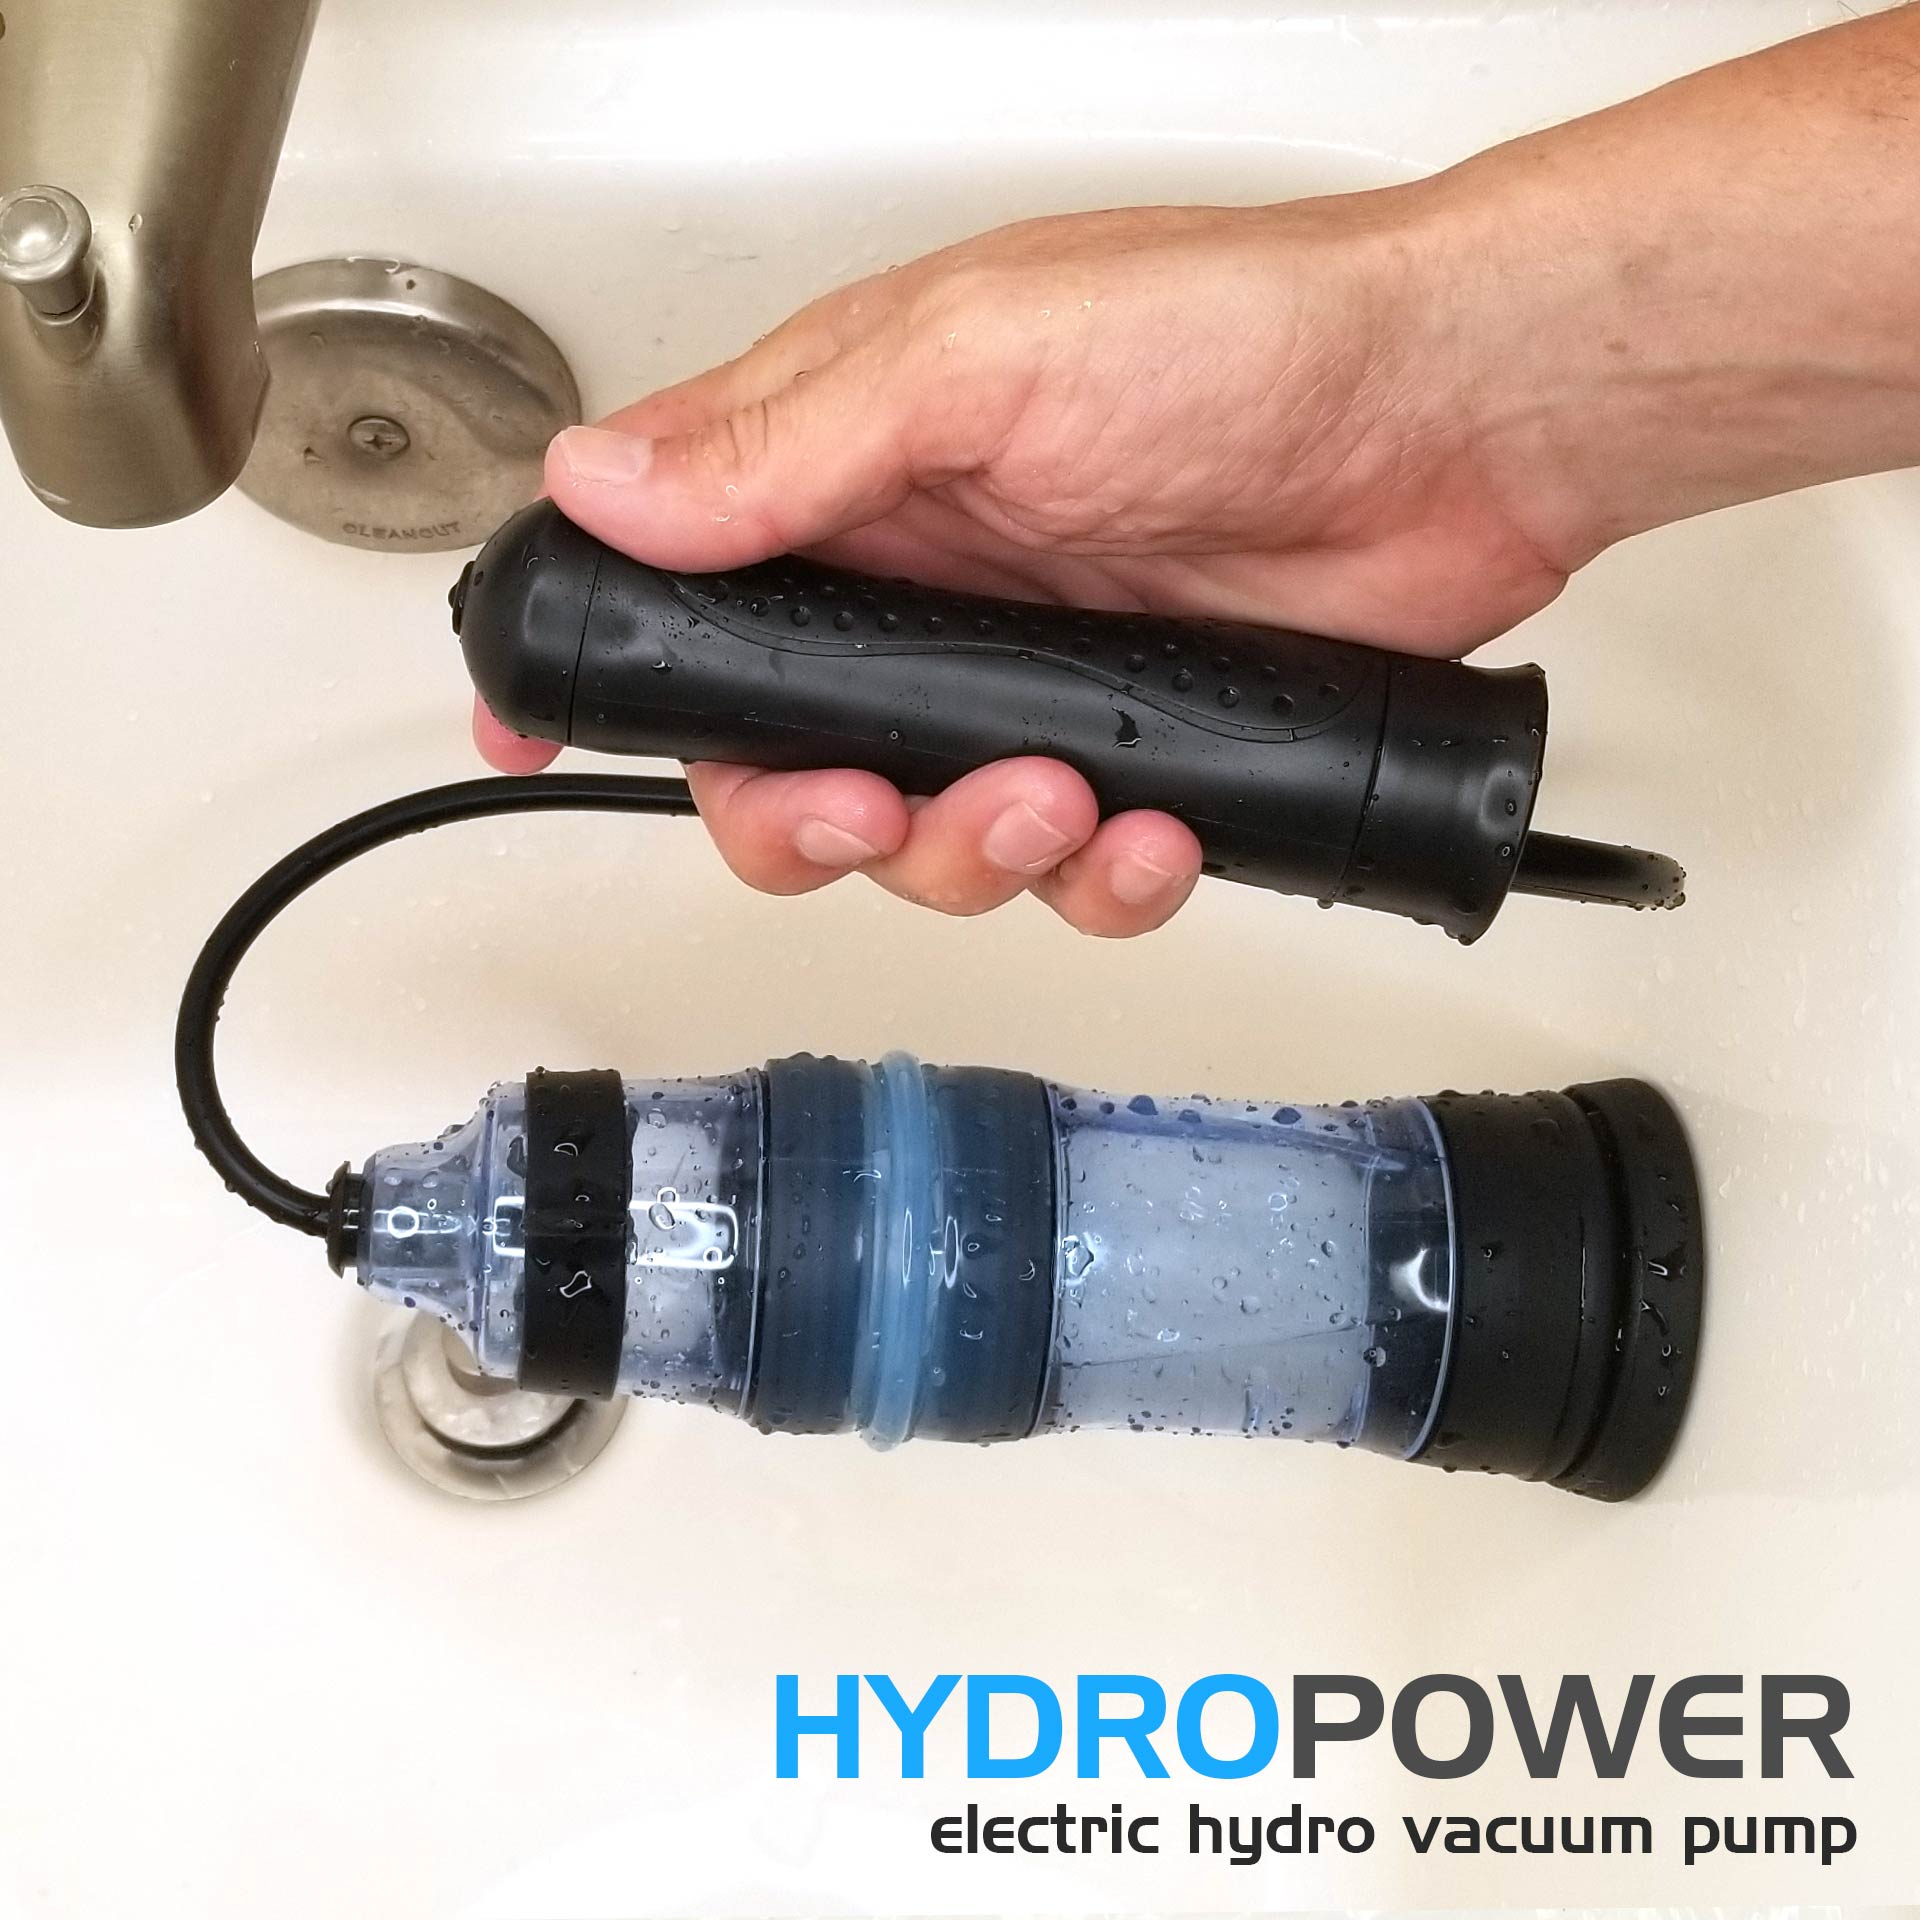 HydroPower - Electric Hydro/Water Penis Pump